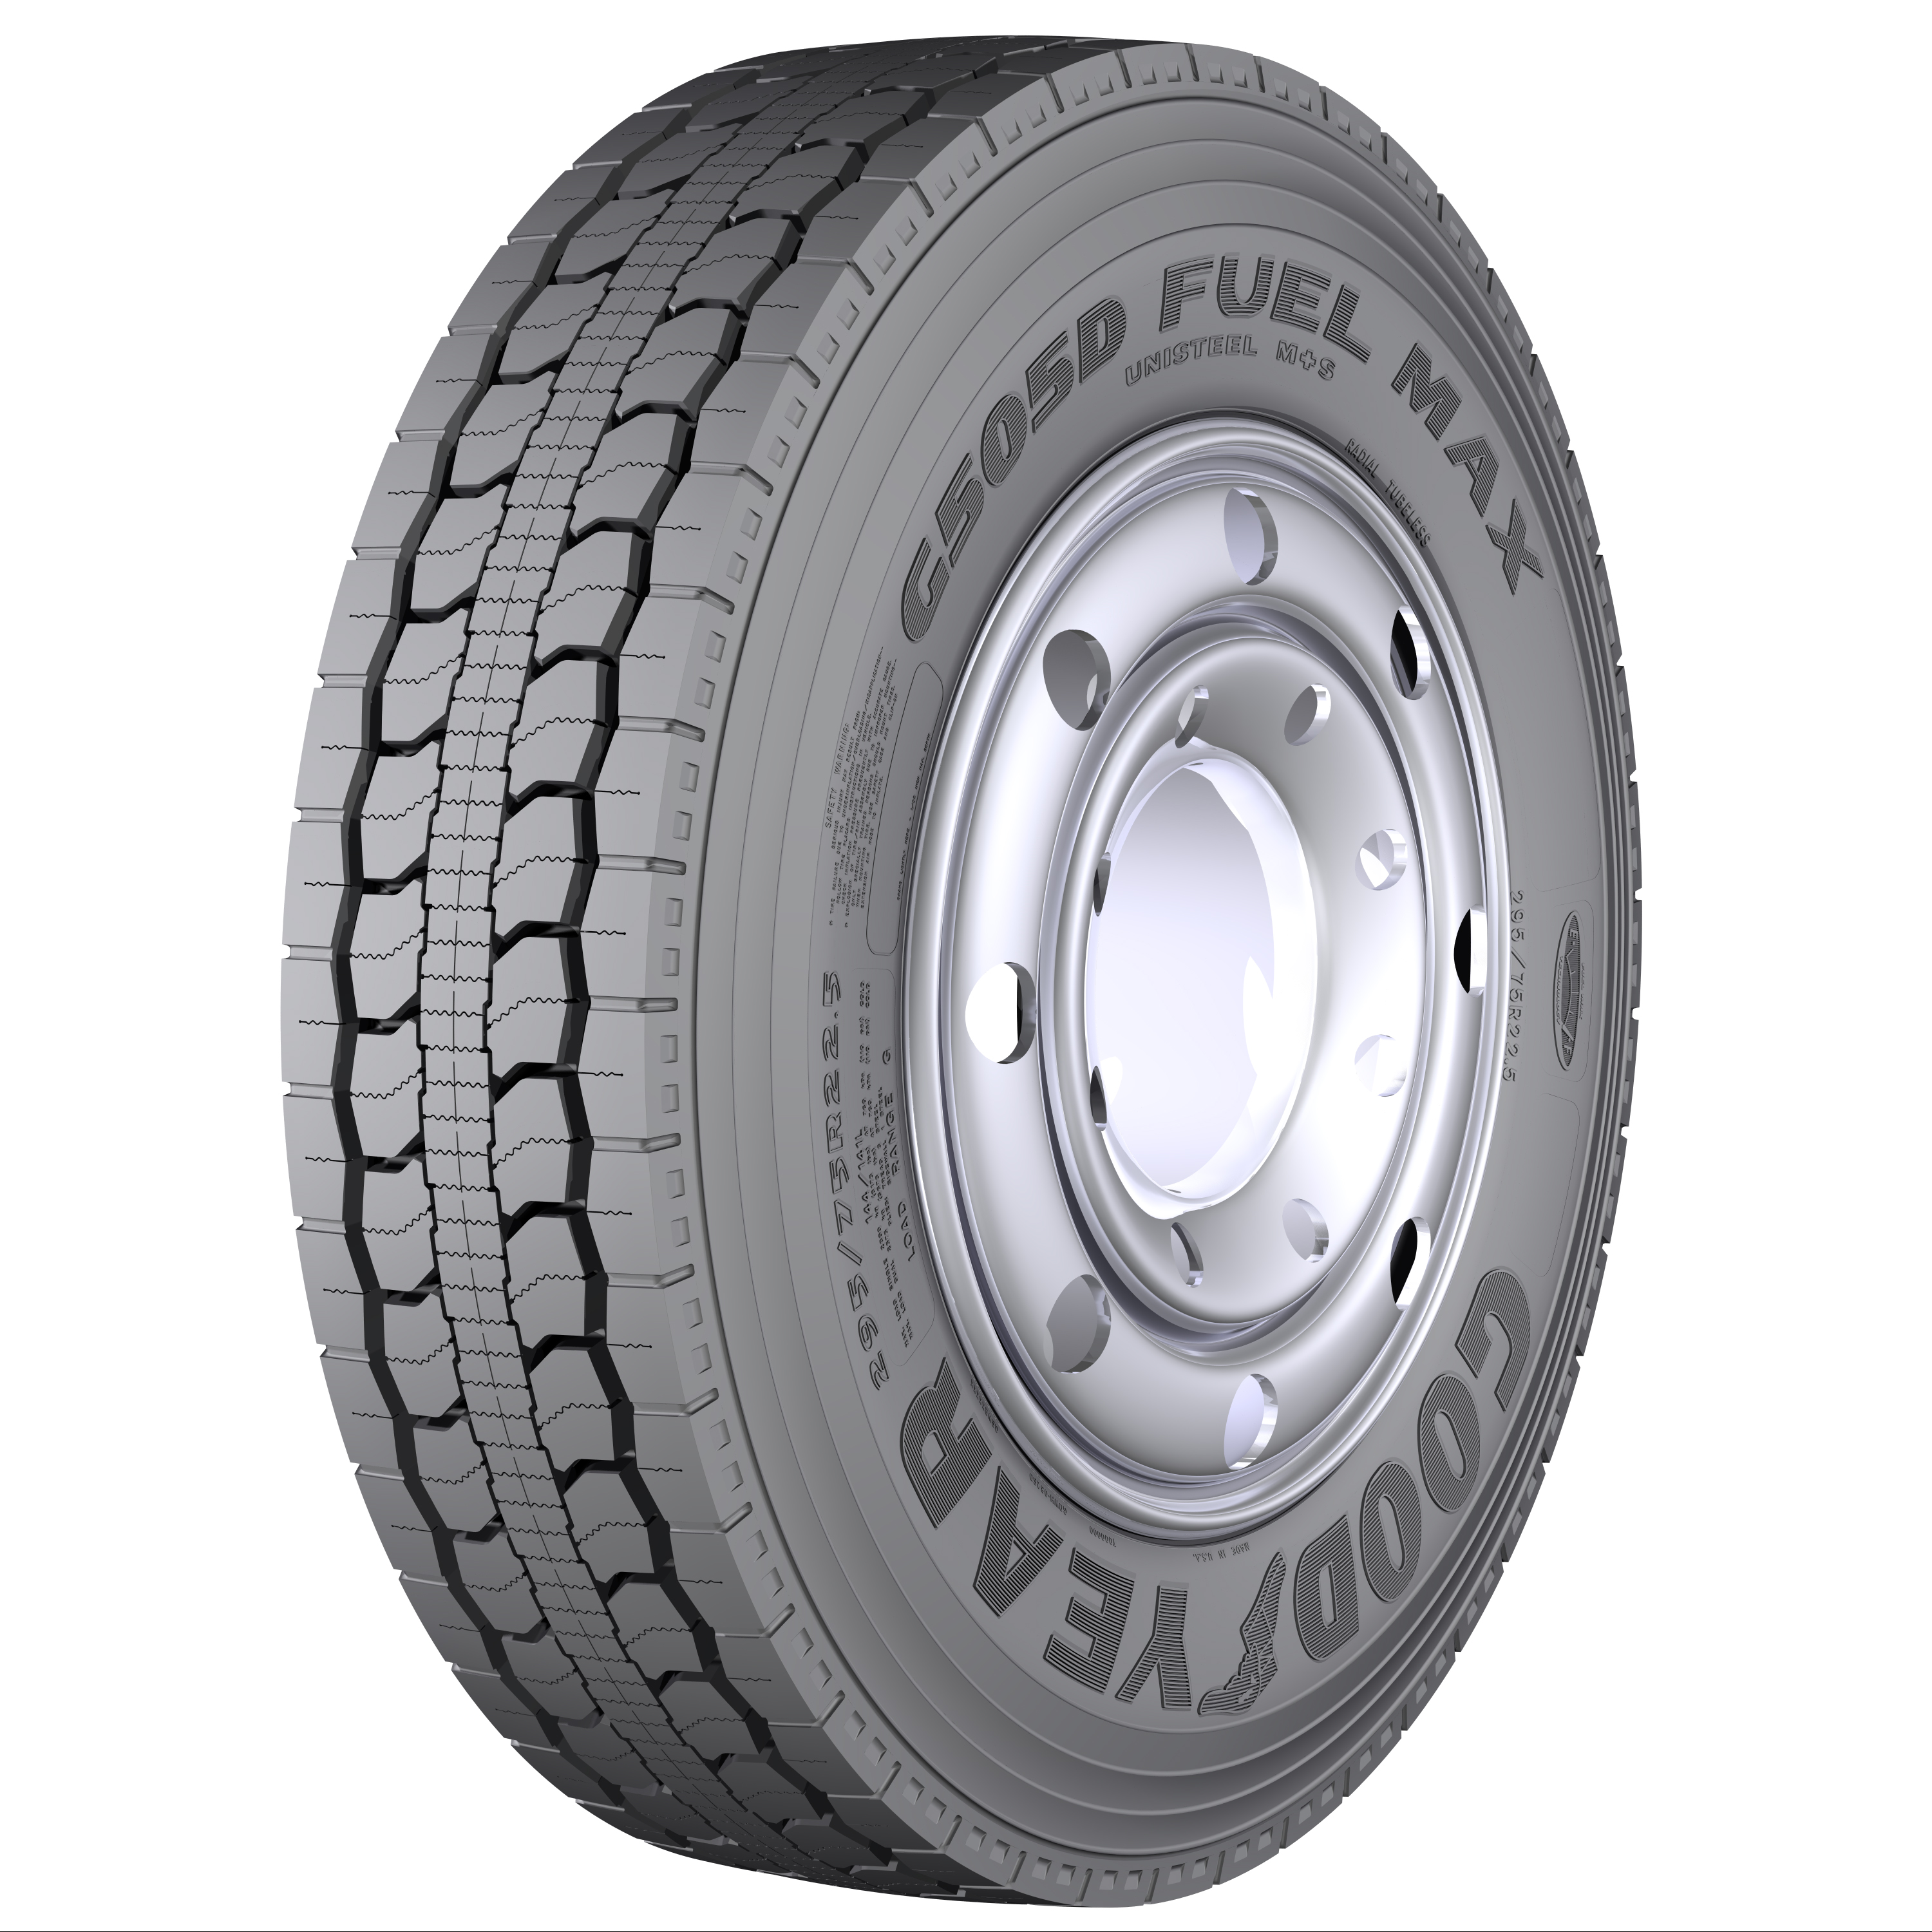 Goodyear previews G505D Fuel Max drive tire